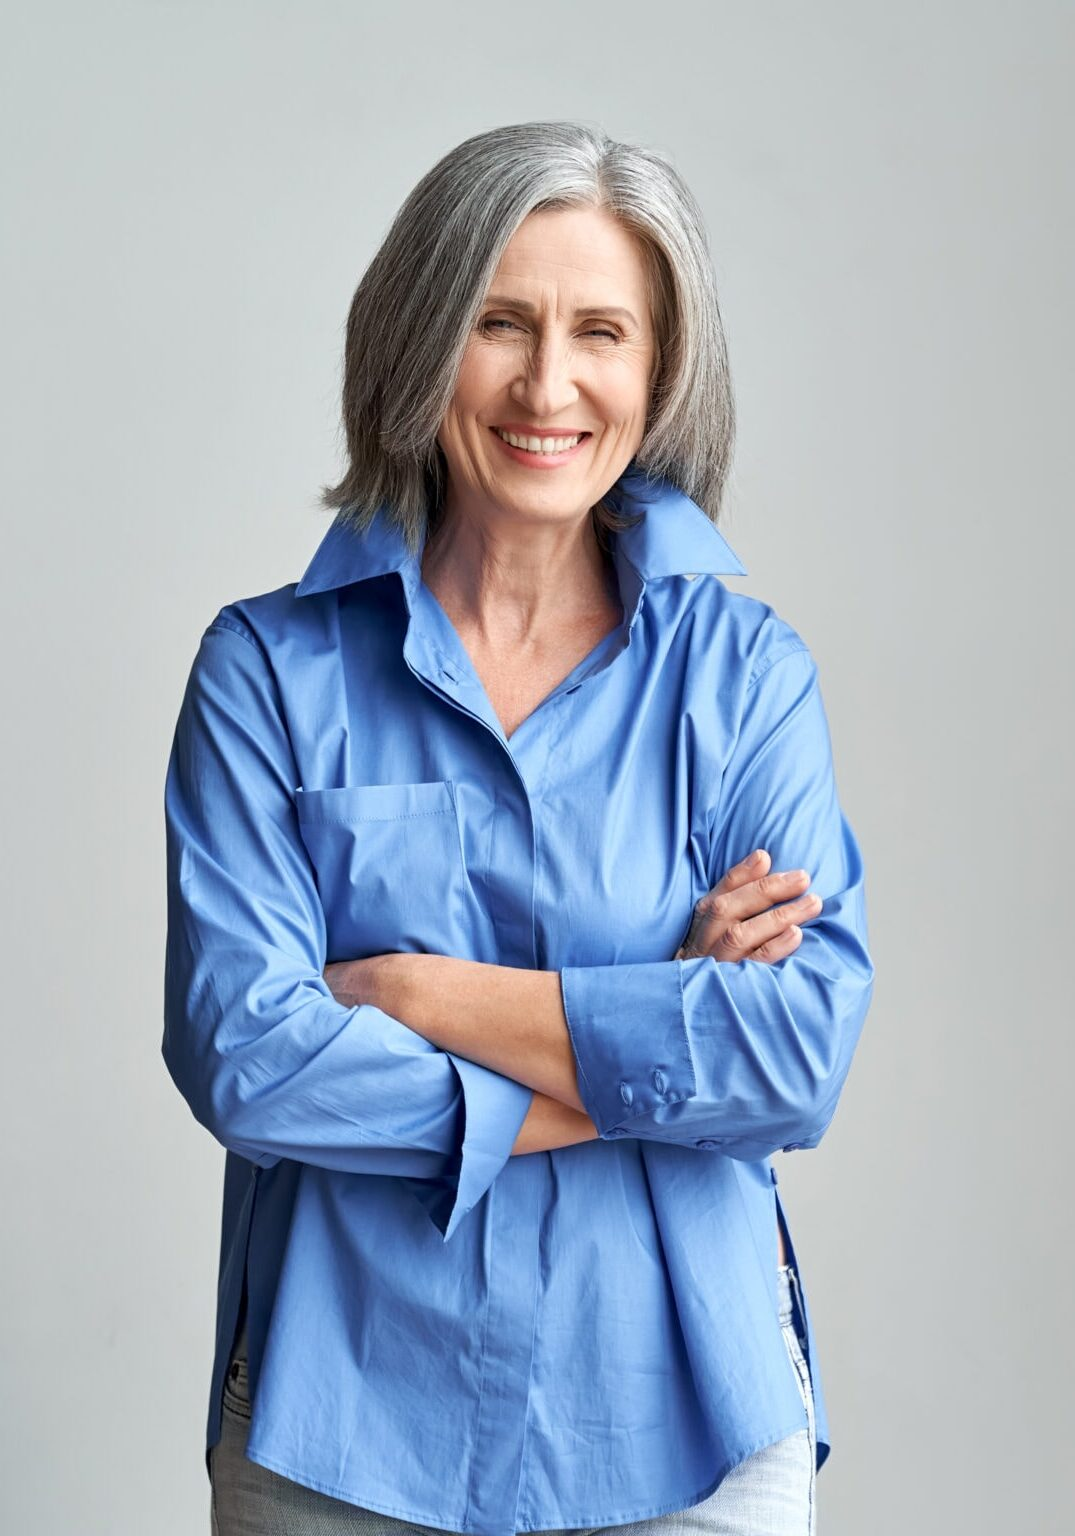 Smiling elegant mature grey-haired woman standing with arms crossed isolated on grey wall background at home office. Happy middle aged old lady professional businesswoman, portrait.